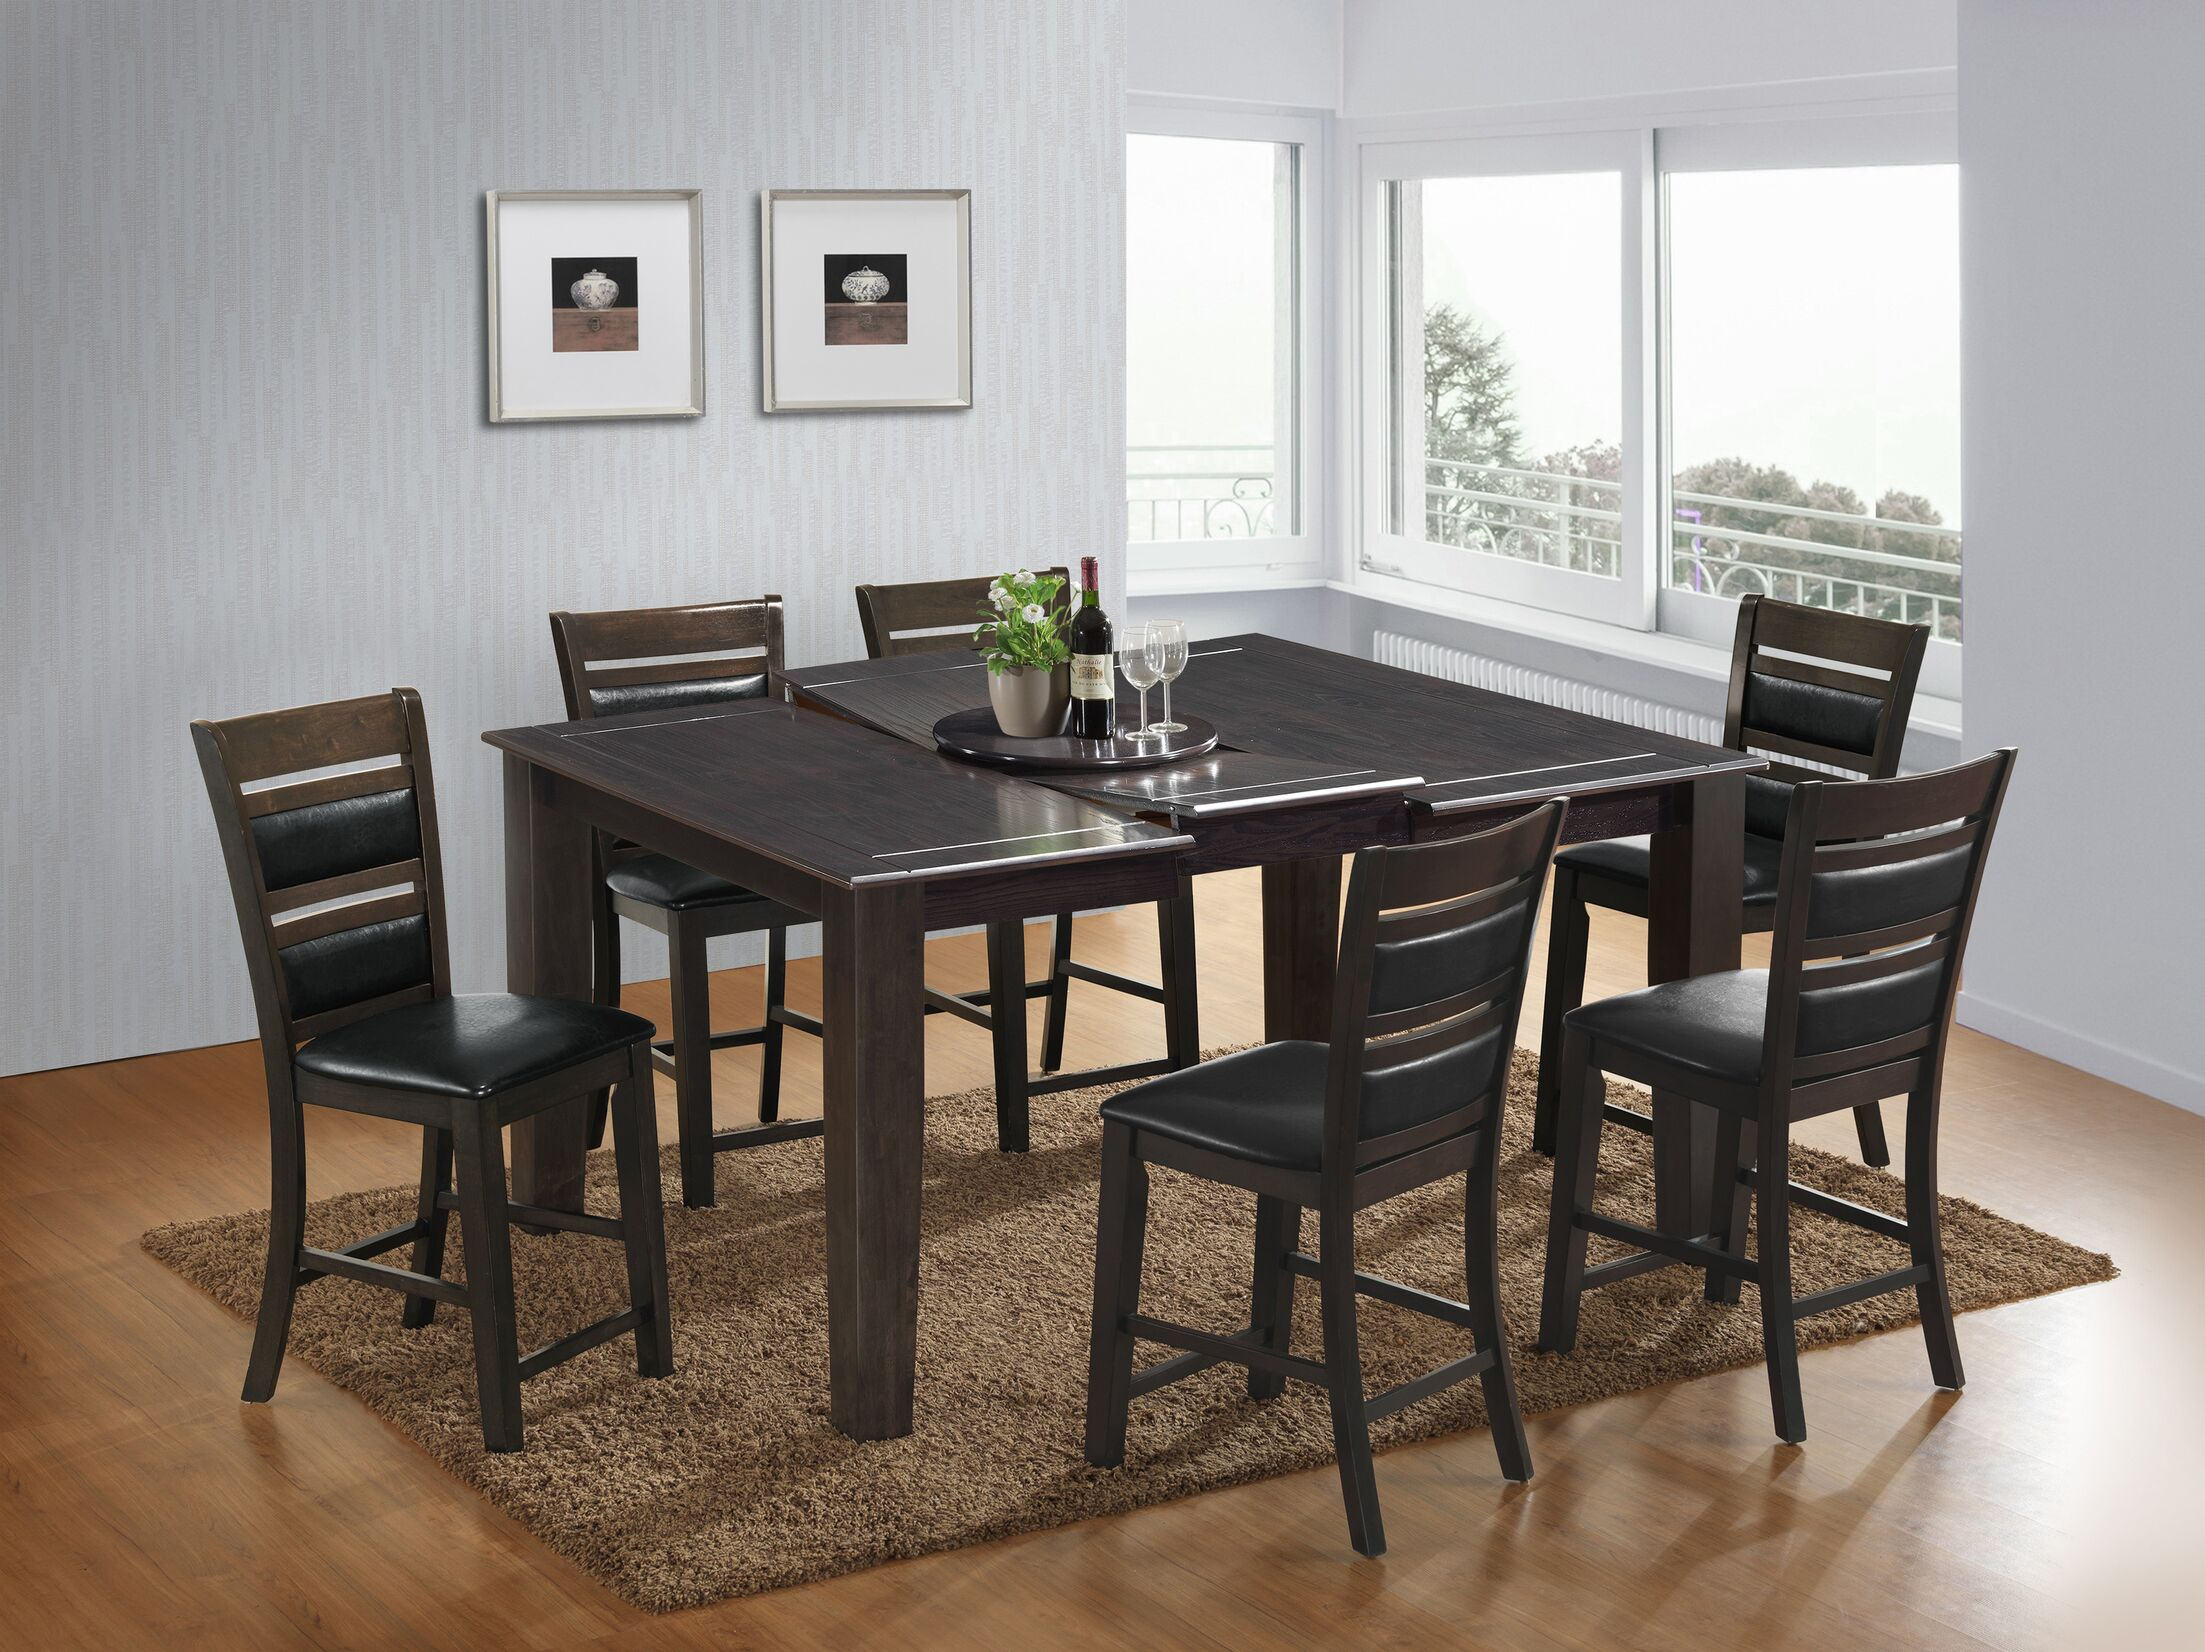 Dining Table Sets 7 Piece Counter Height Dining Set